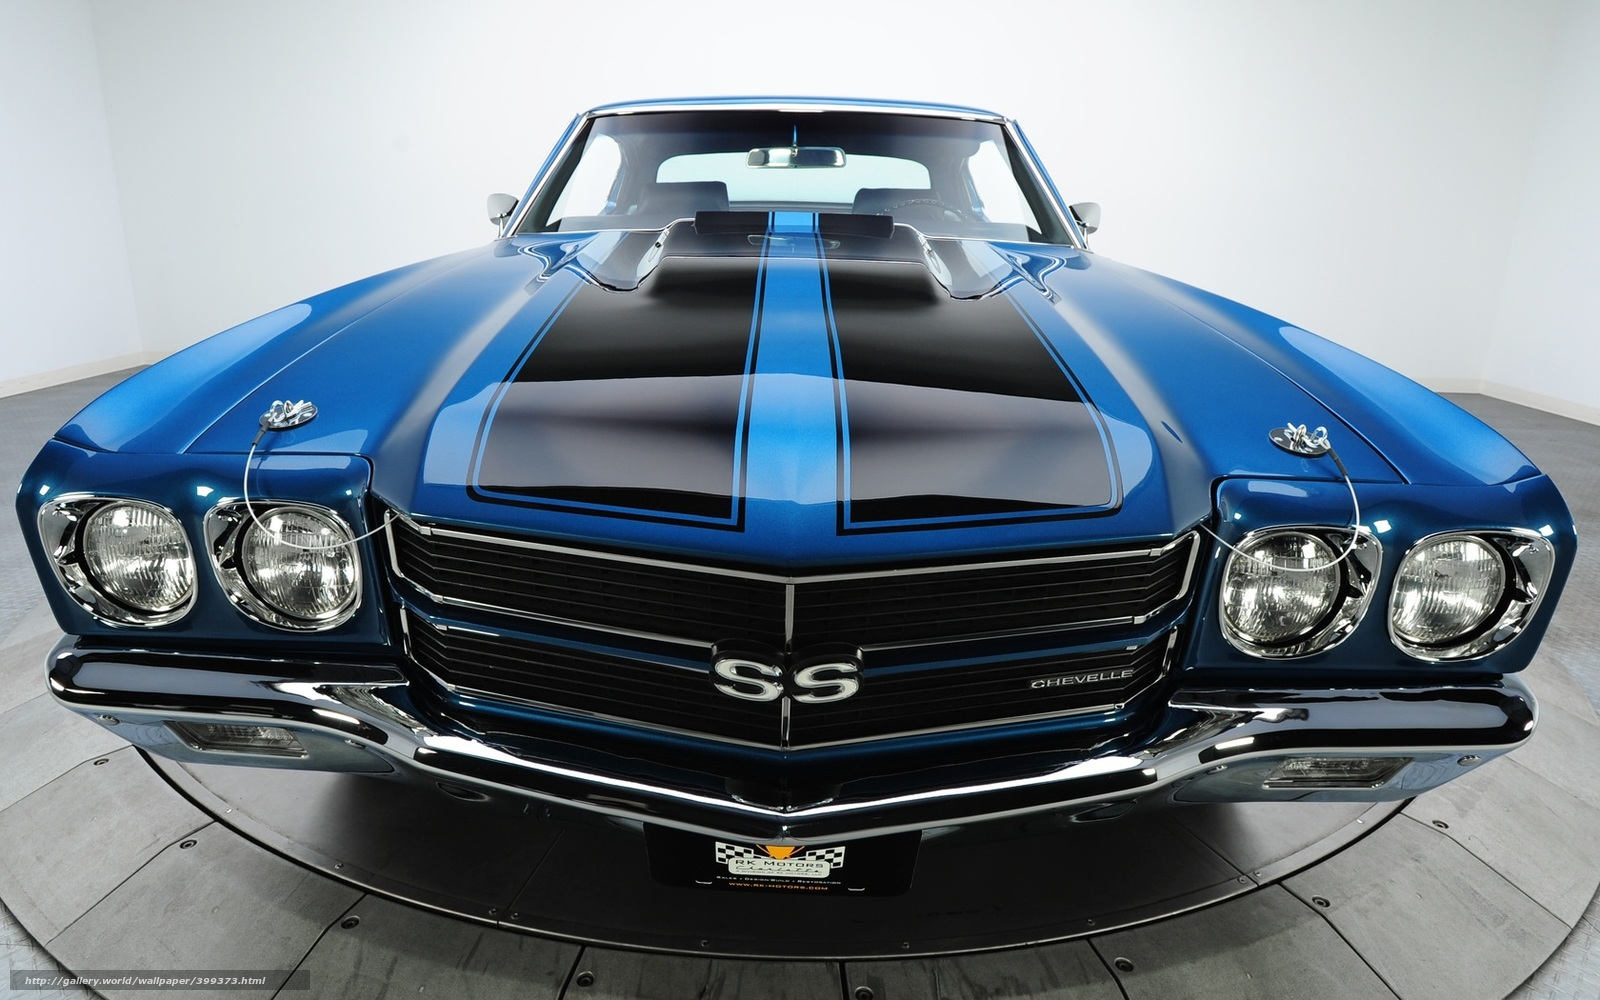 Download wallpaper Chevrolet shevil muscle car Chevrolet 1600x1000